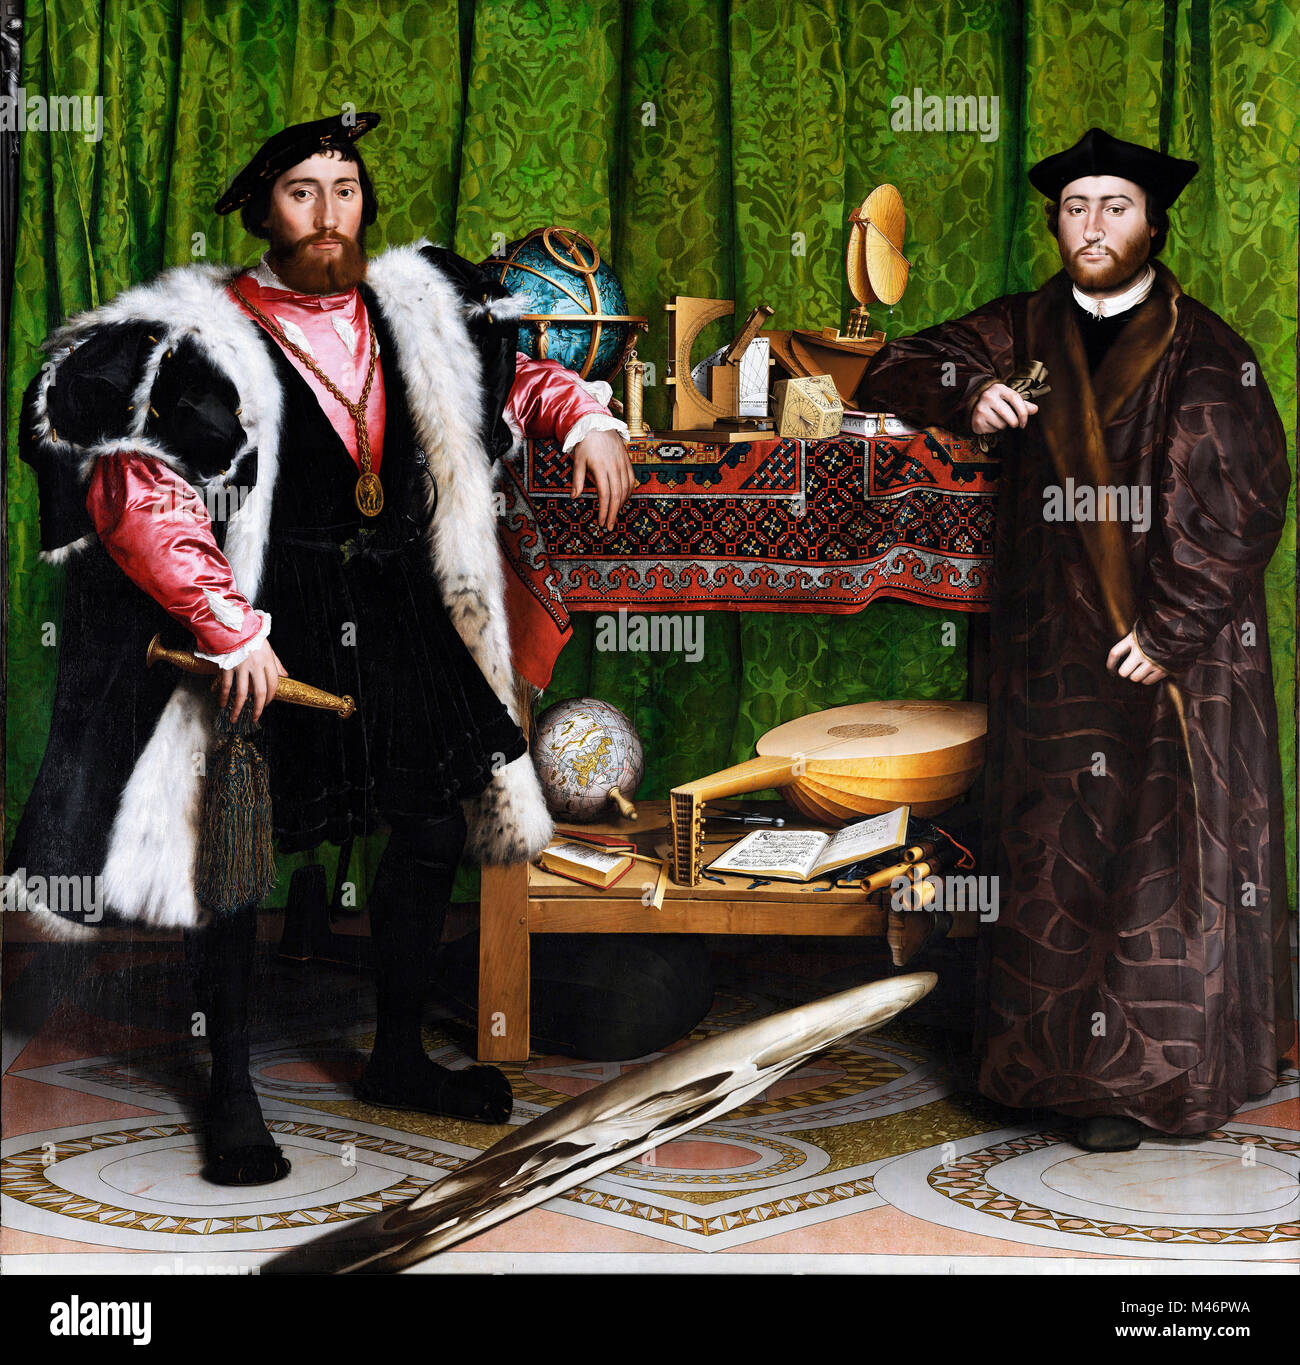 The Ambassadors by Hans Holbein the Younger - Stock Image